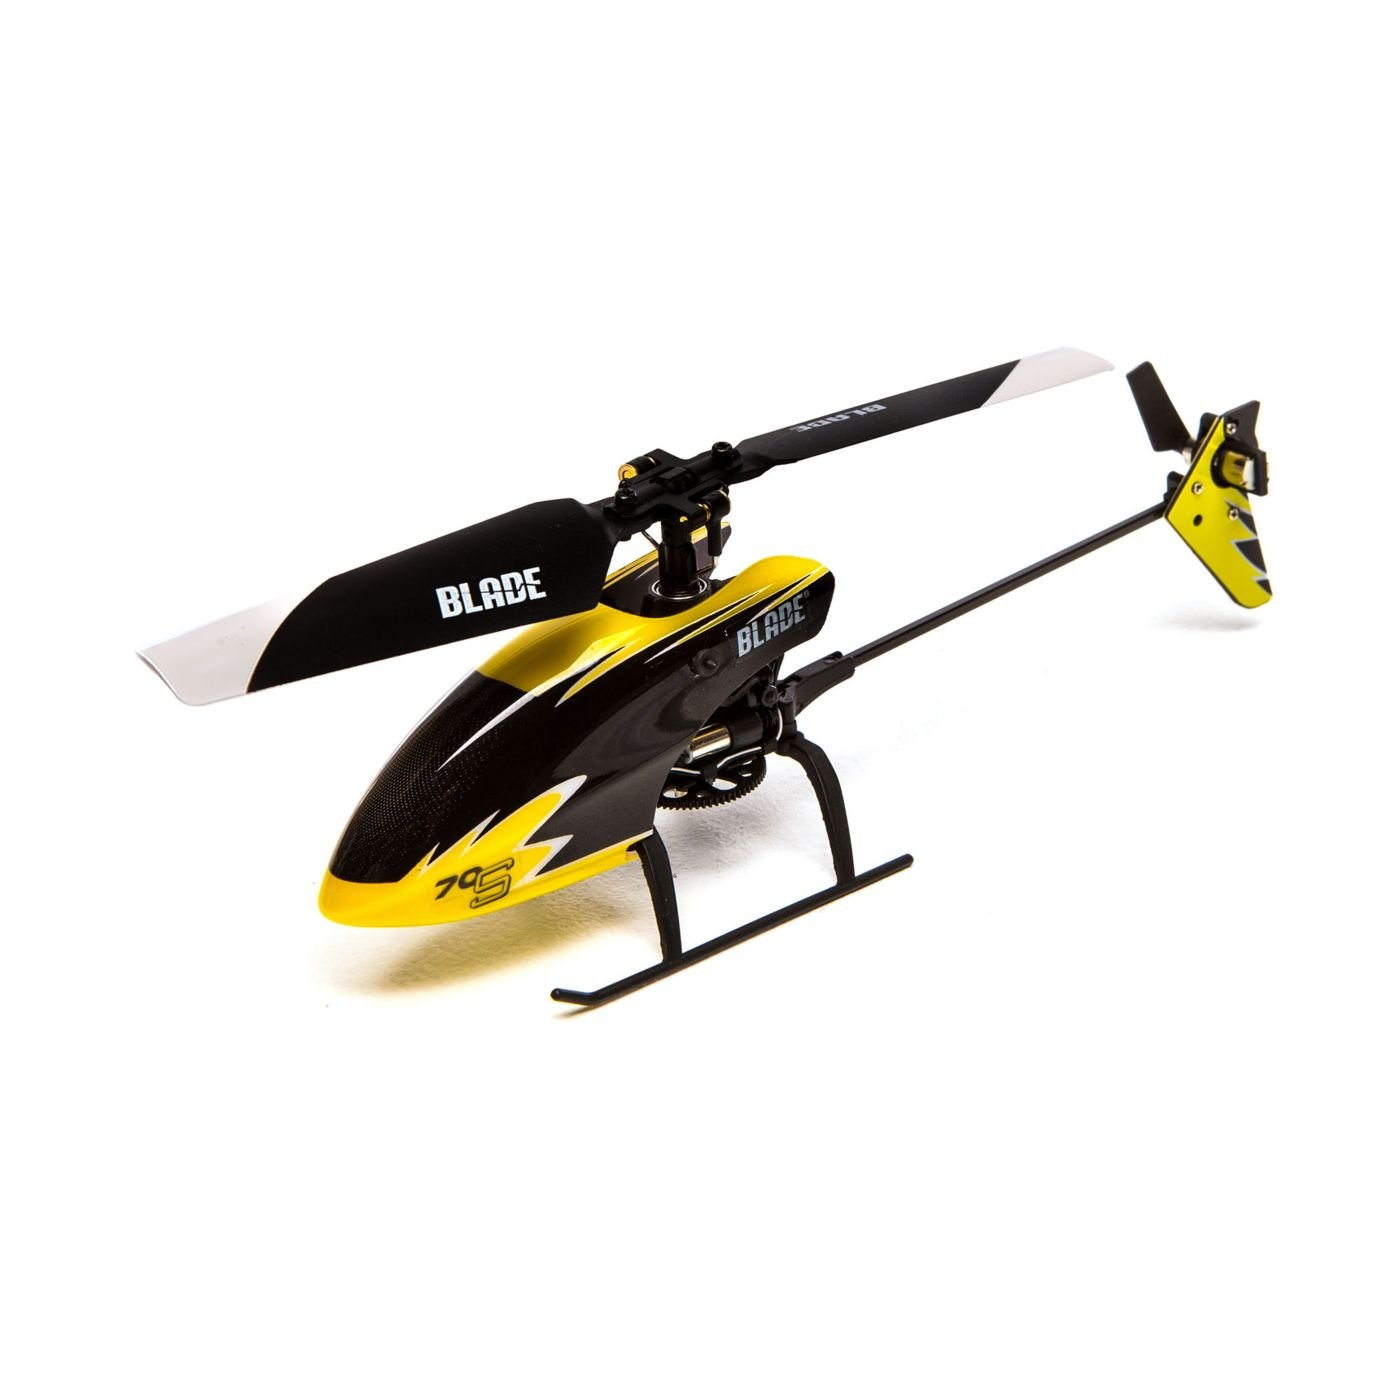 Blade BLH4200 70 S RTF RC Micro Helicopter